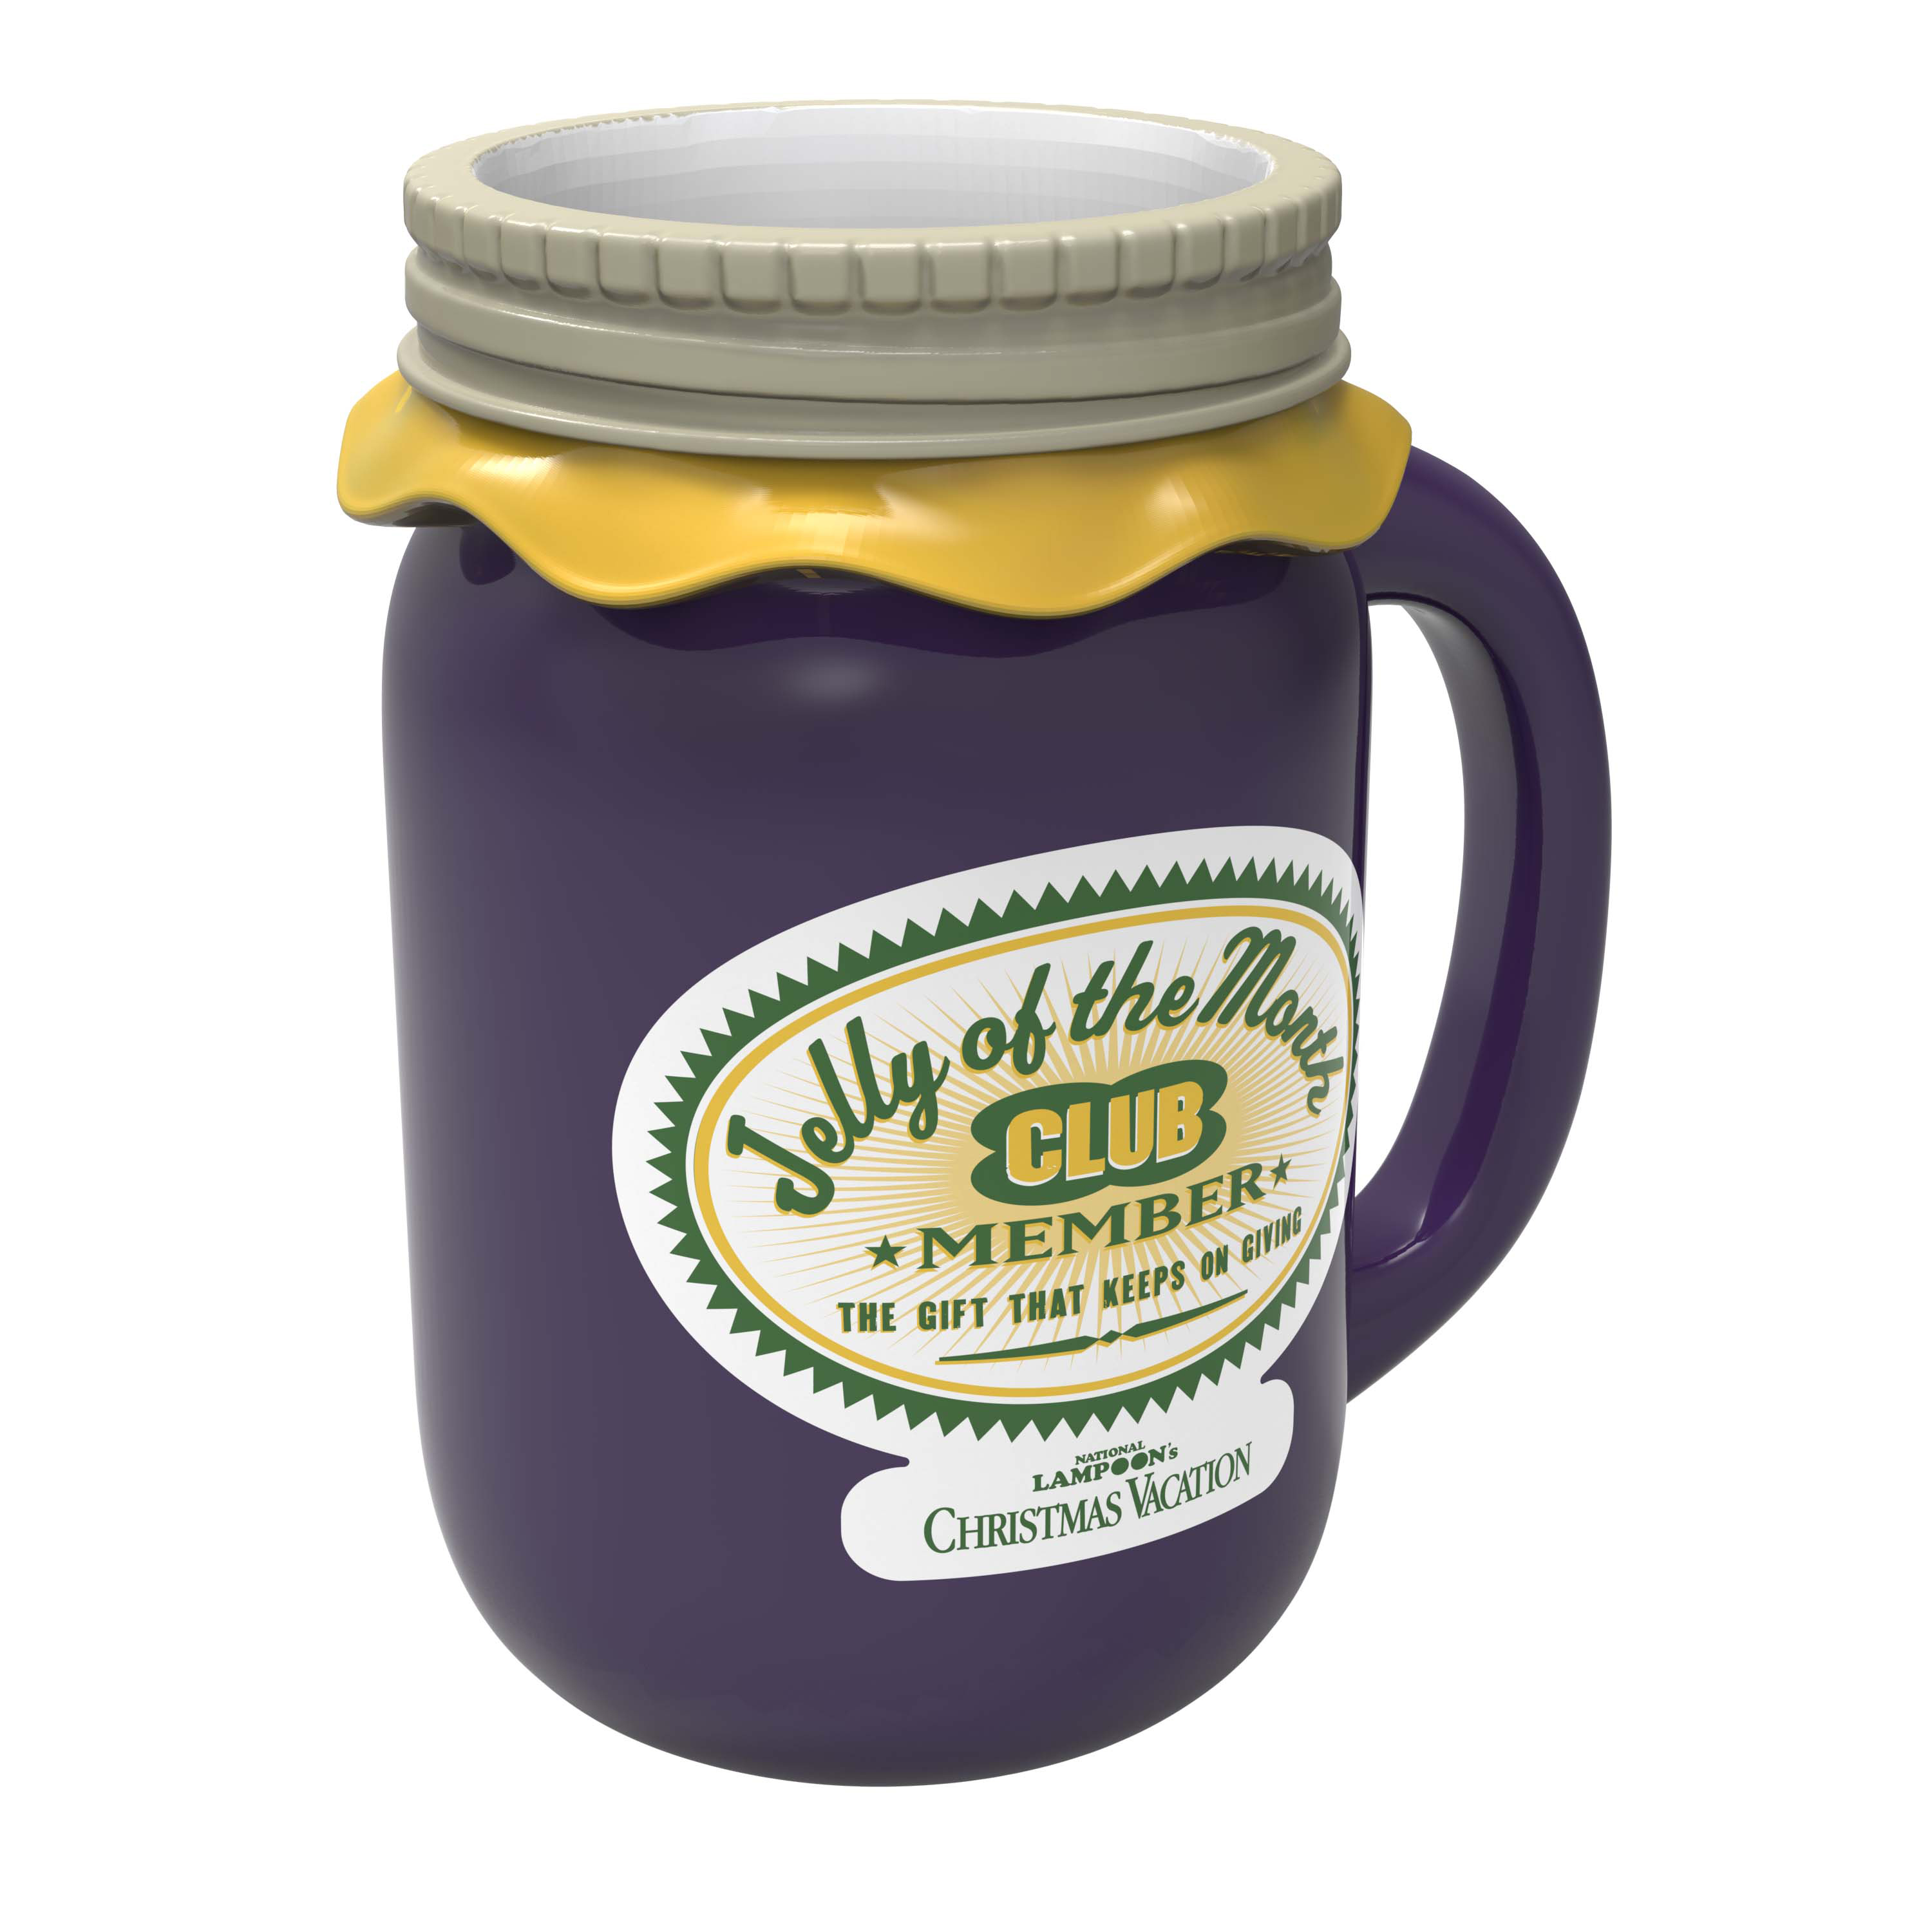 National Lampoon 10 ounce Coffee Mug, Jelly of the Month Club slideshow image 3